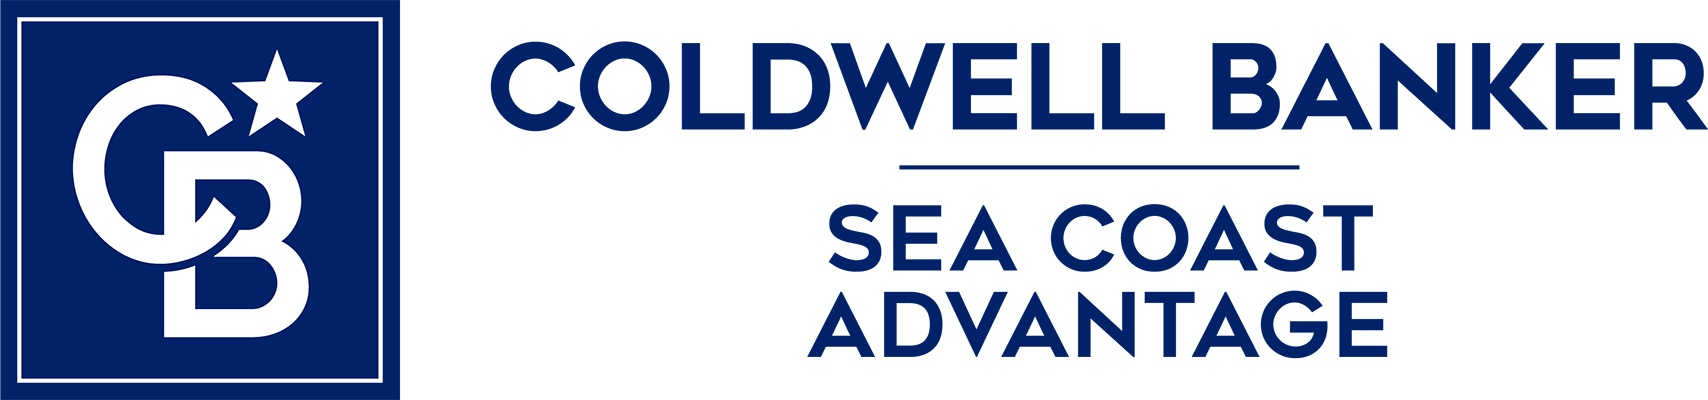 Coldwell Banker Sea Coast Advantage - Team Gale